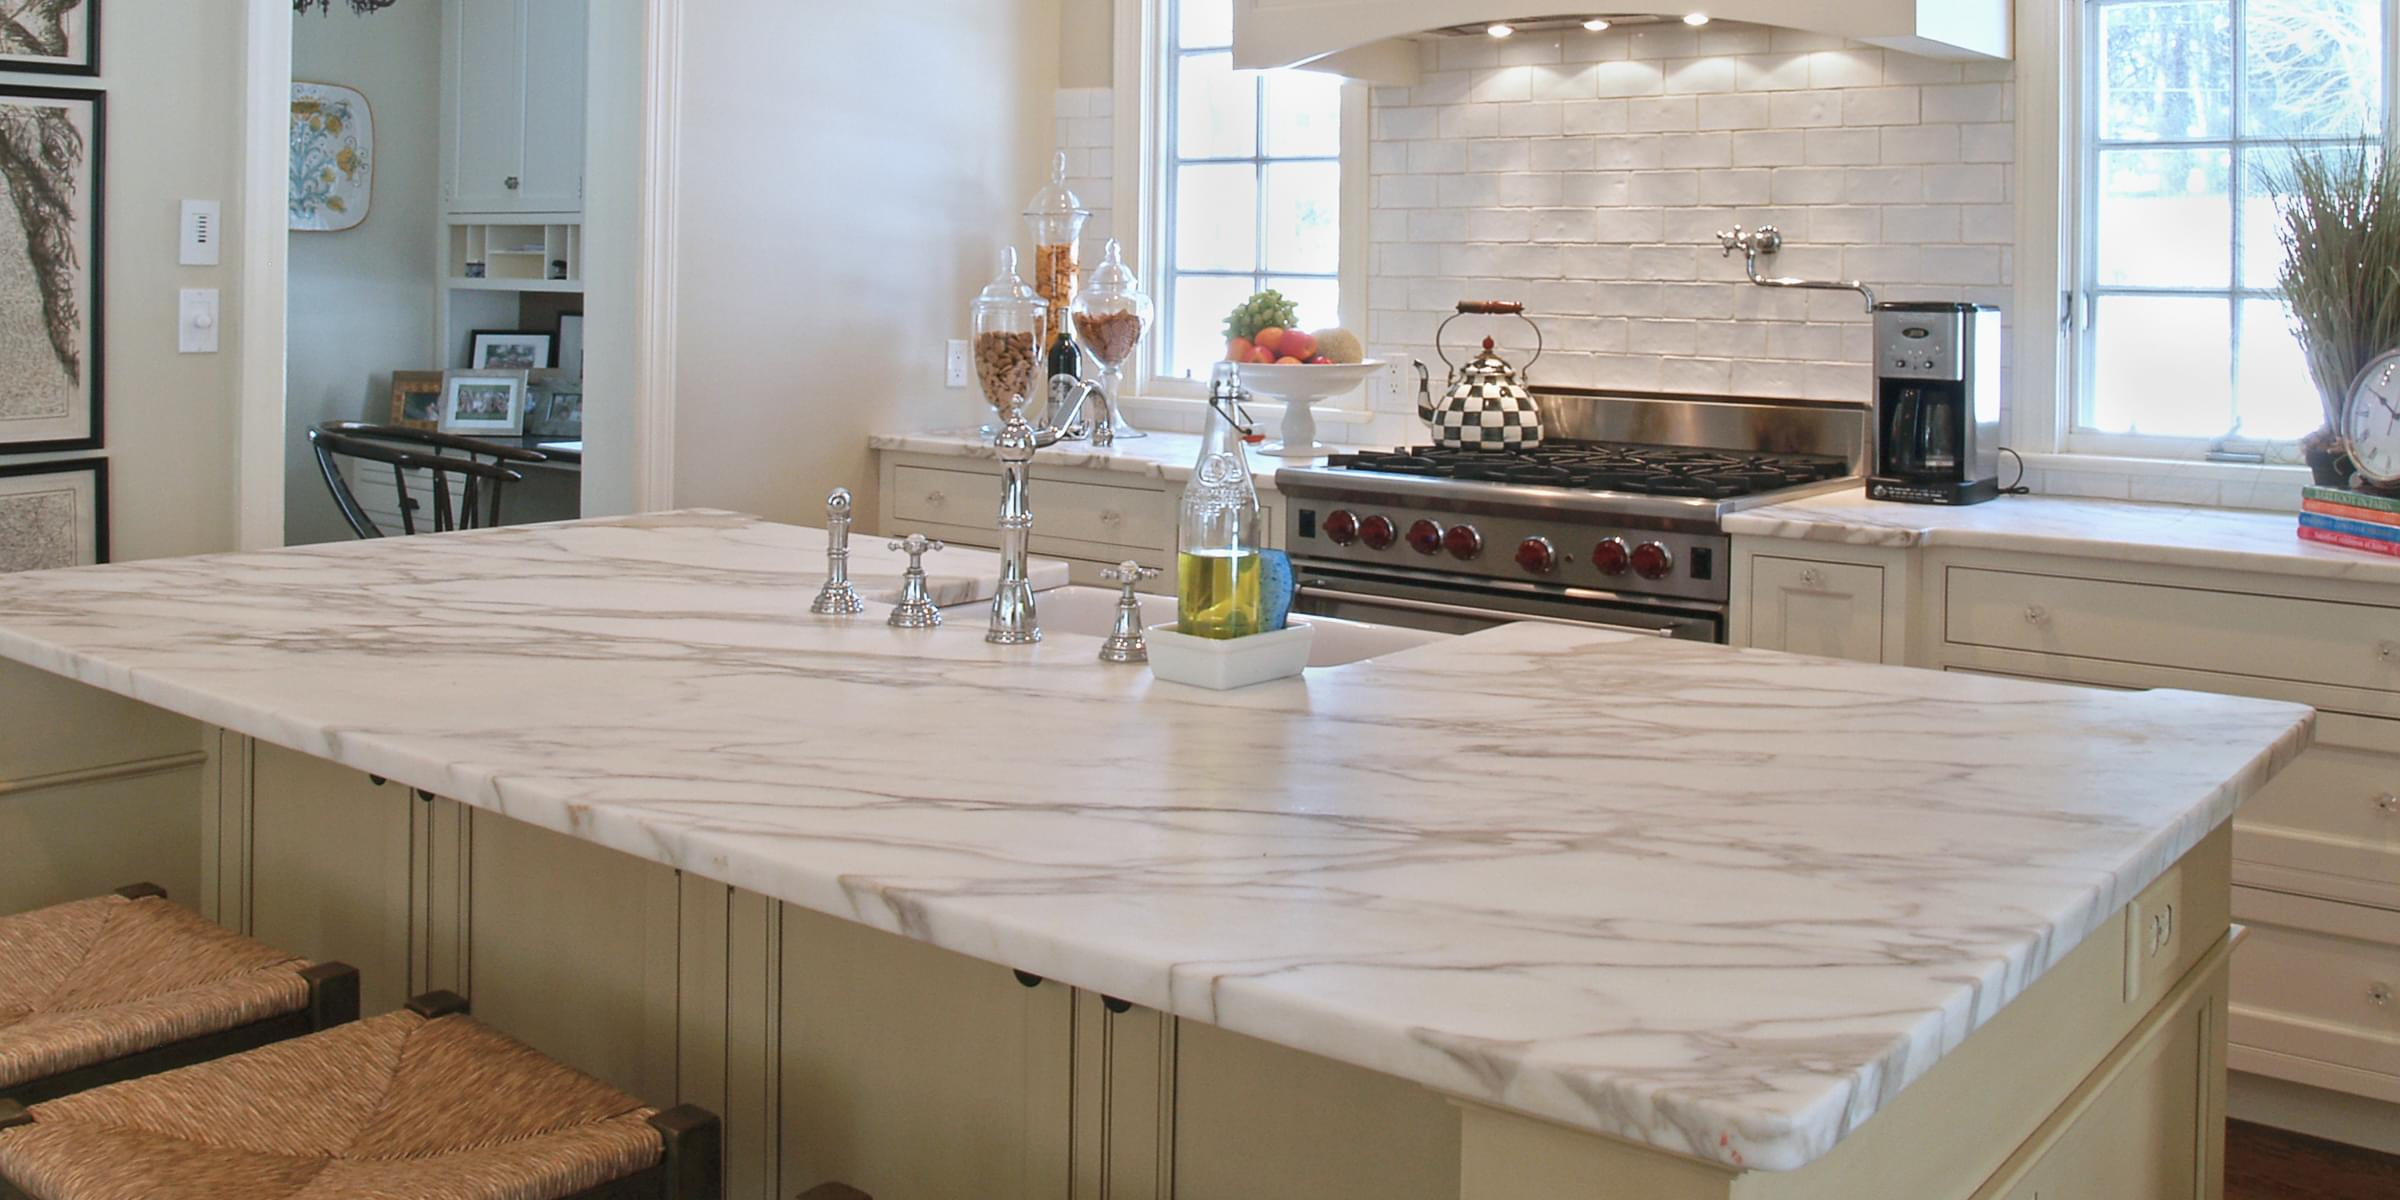 The Pros And Cons Of Quartz Countertops Storm Online Ping